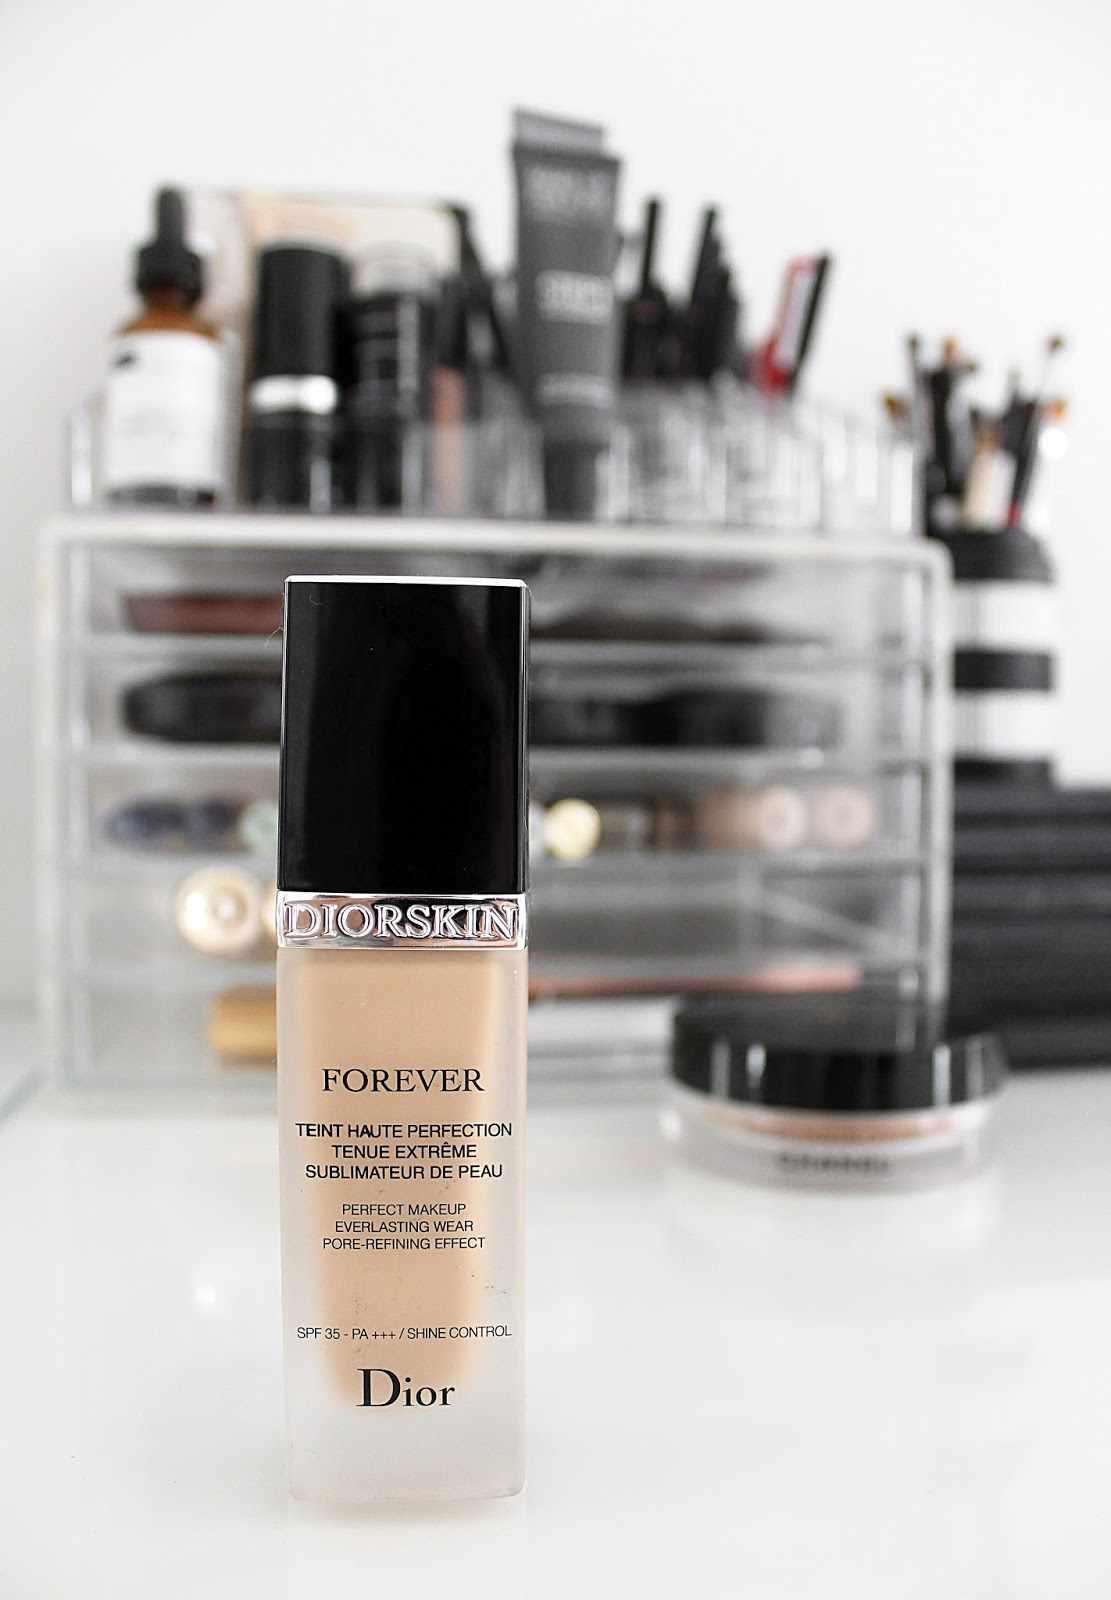 Diorskin Forever Skin-Perfecting Foundation Review - A New Base Favourite?